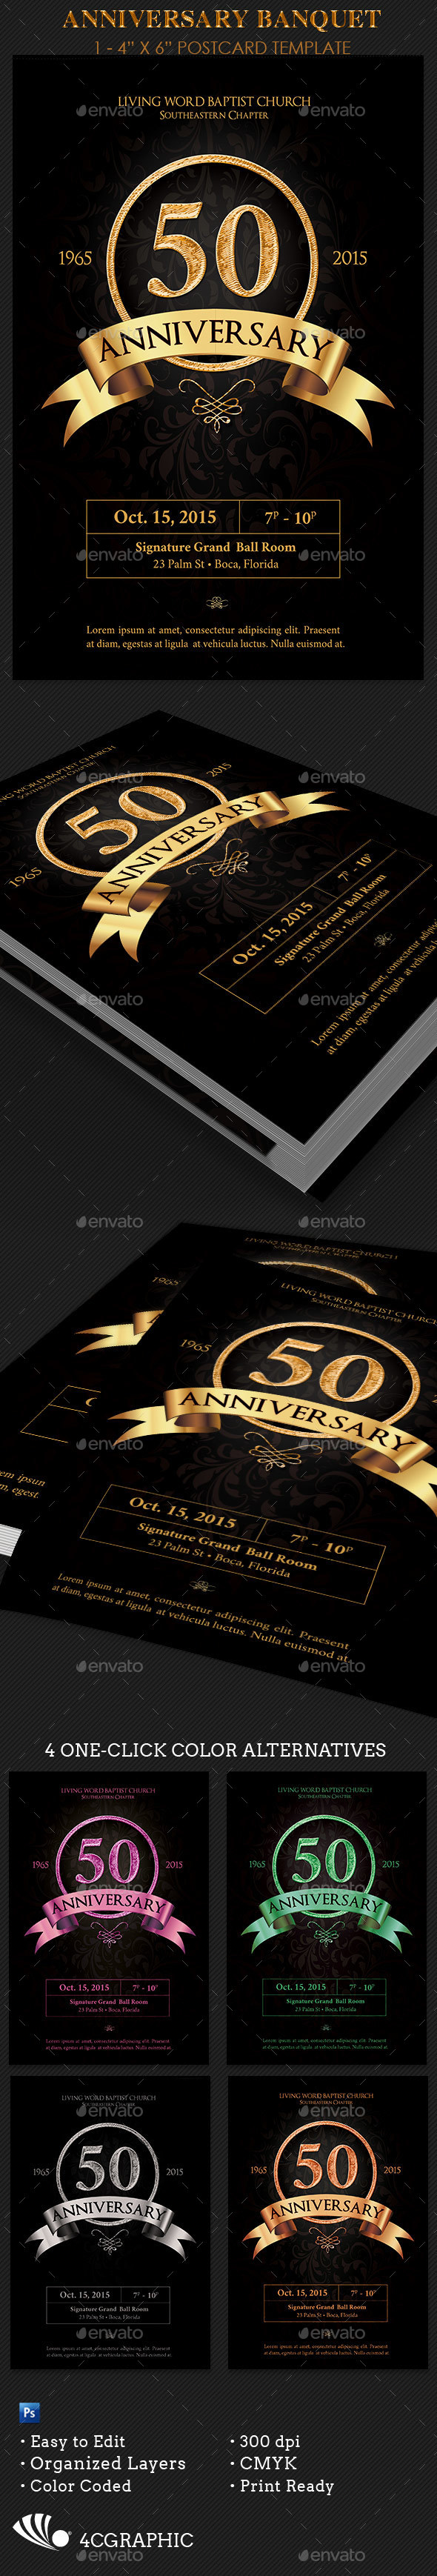 Anniversary Banquet Flyer Template - Events Flyers